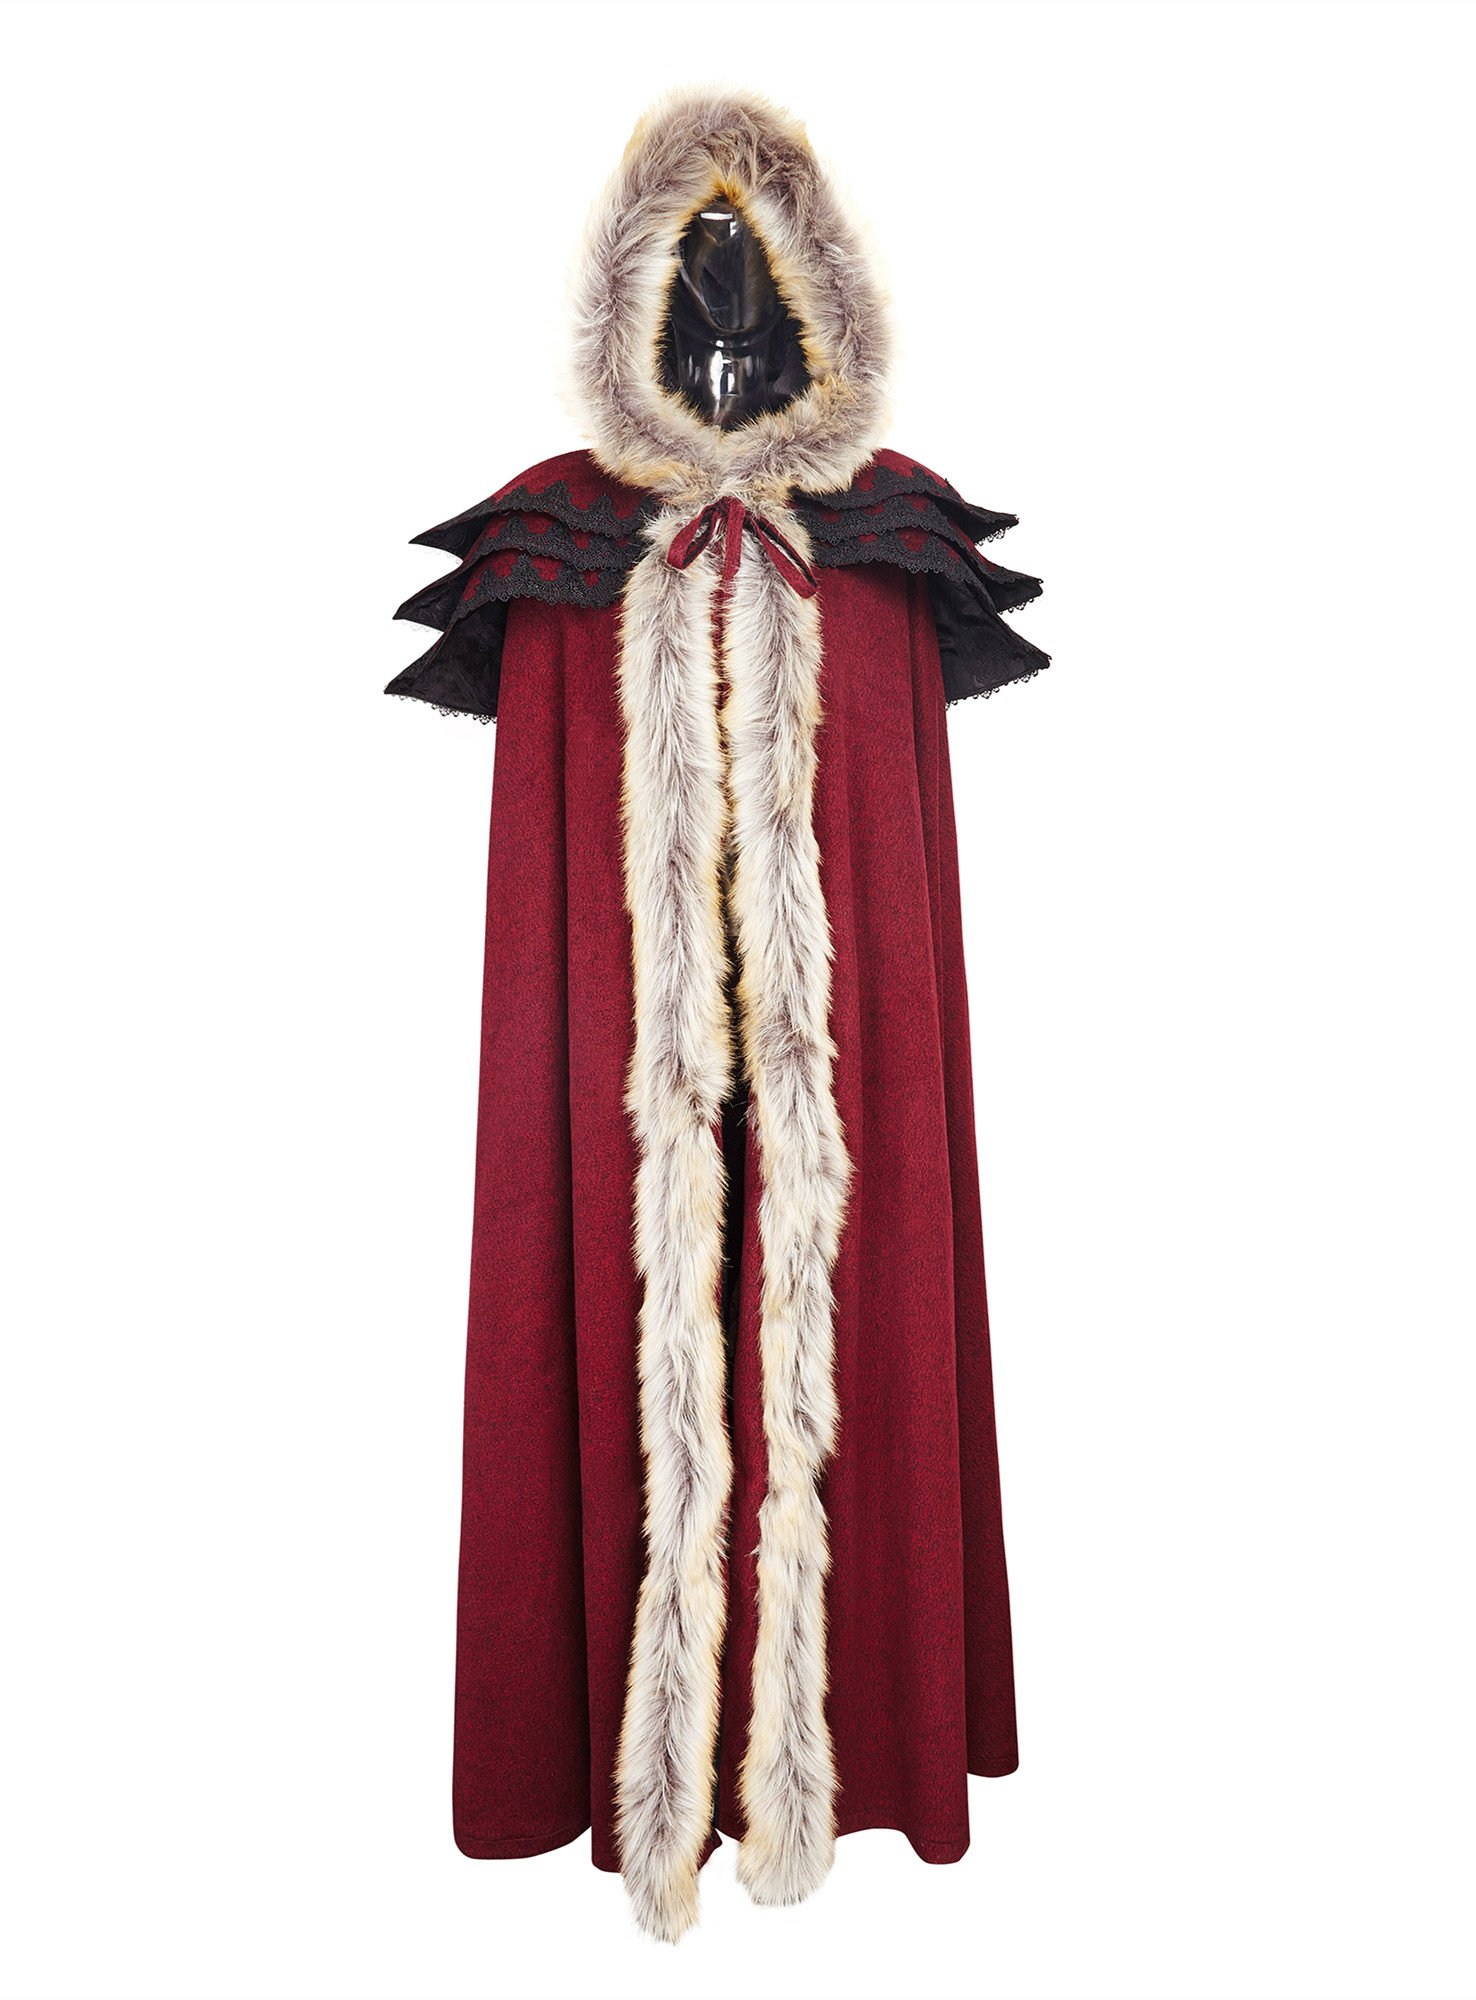 Punk Rave Women's Medieval Fluffy Faux Fur Trimmed Cape Full Length Hooded Cloak Coat(Red) by Punk Rave (Image #5)